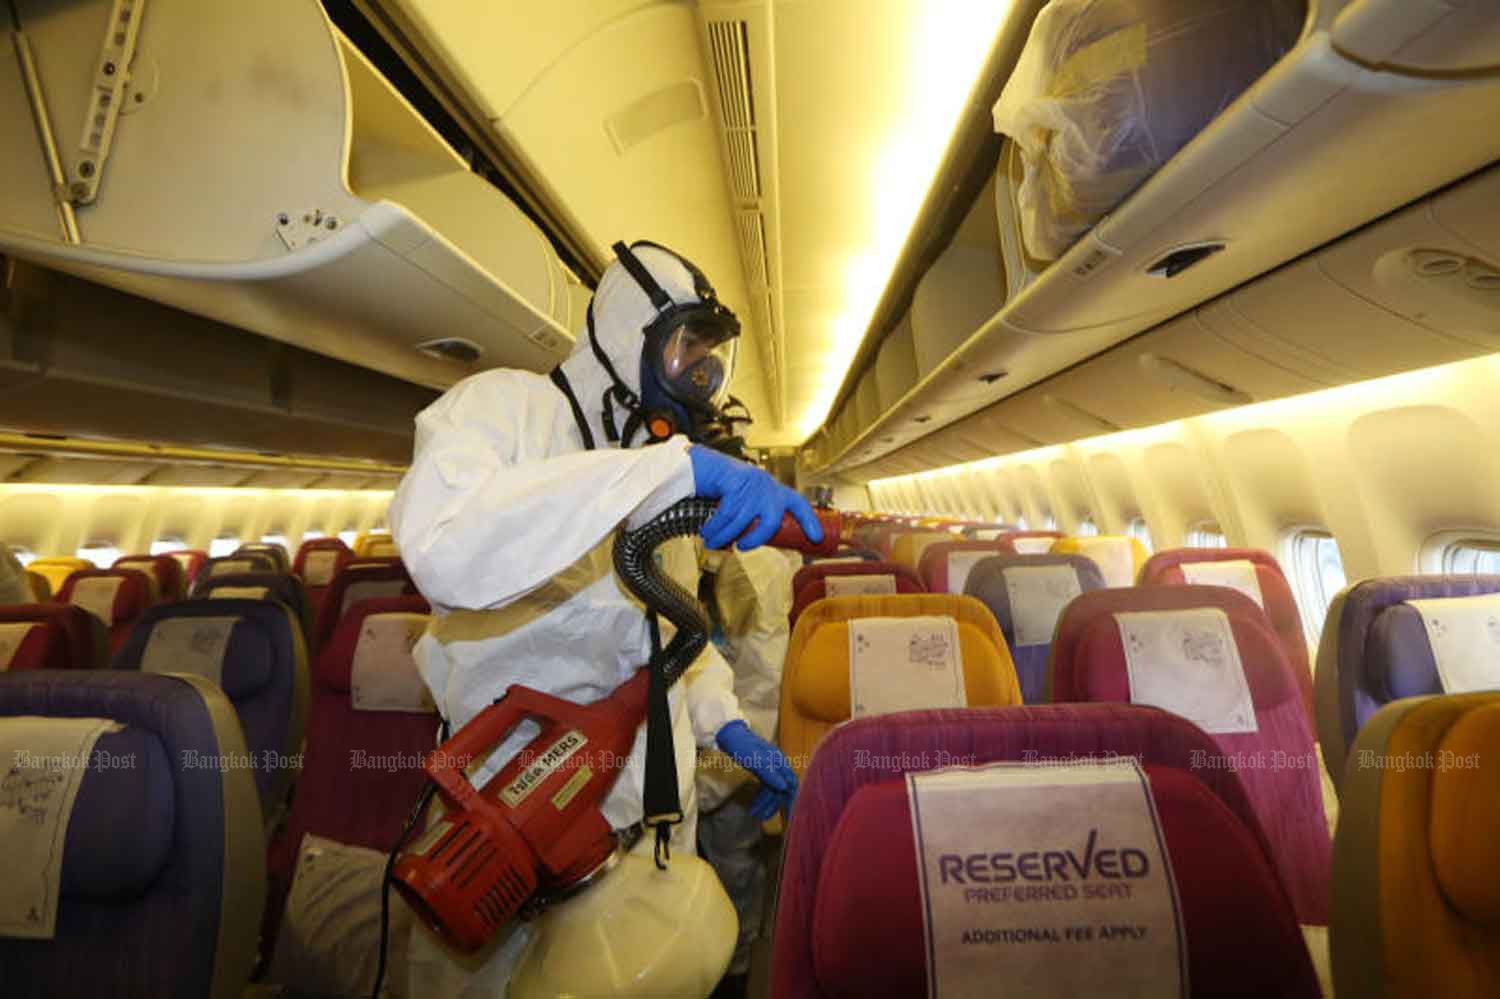 Finding the truth: Is the plane really a source of virus spread with extremely high risk? - Picture 3.